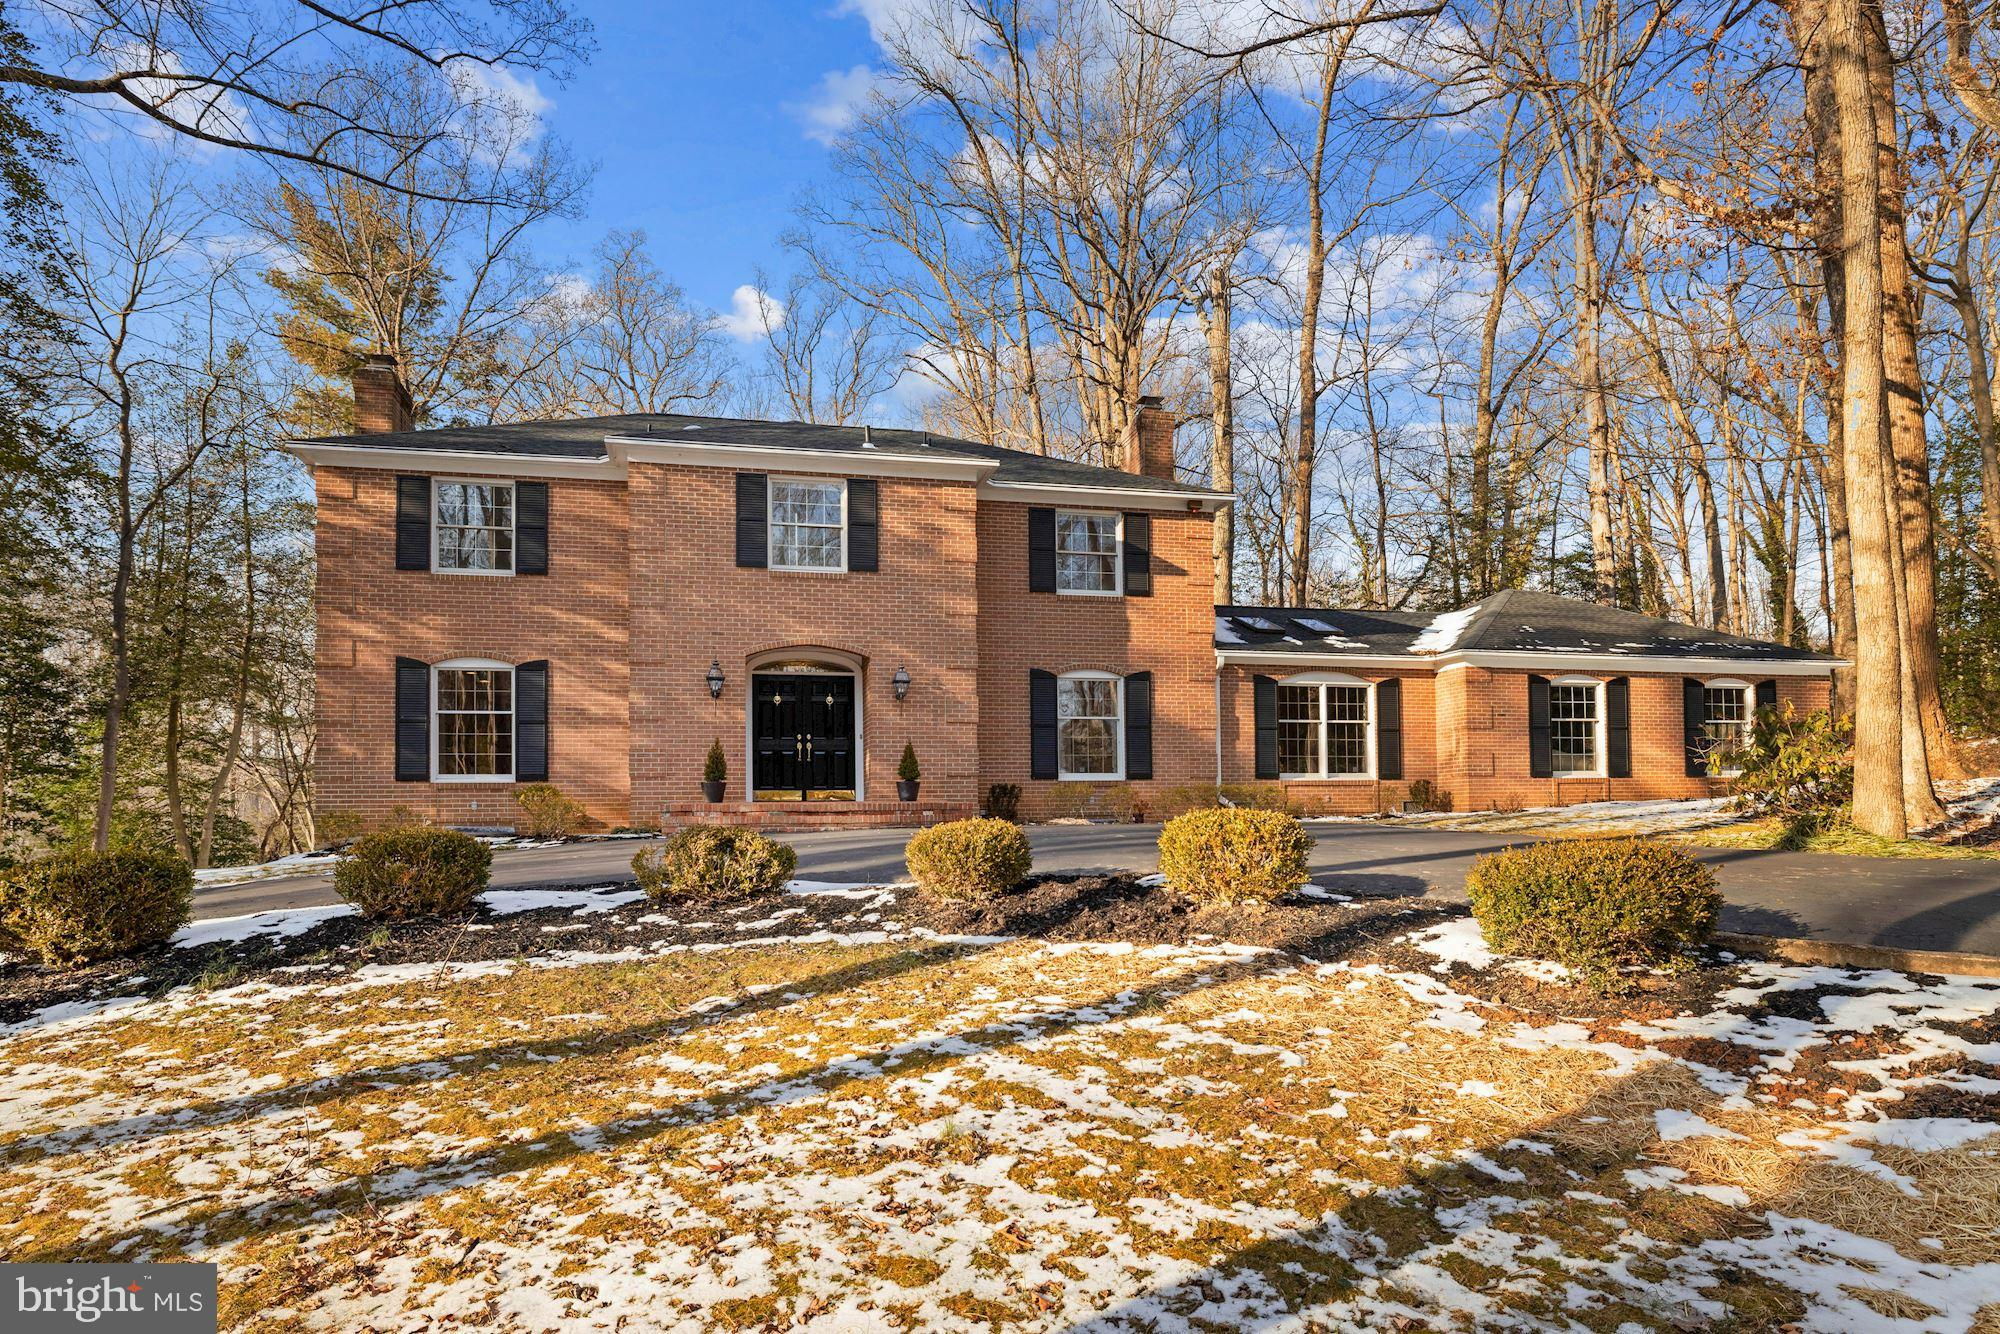 Stately all brick renovated colonial nestled on over an acre flat lot w/ circular driveway. 5 BDR, 3